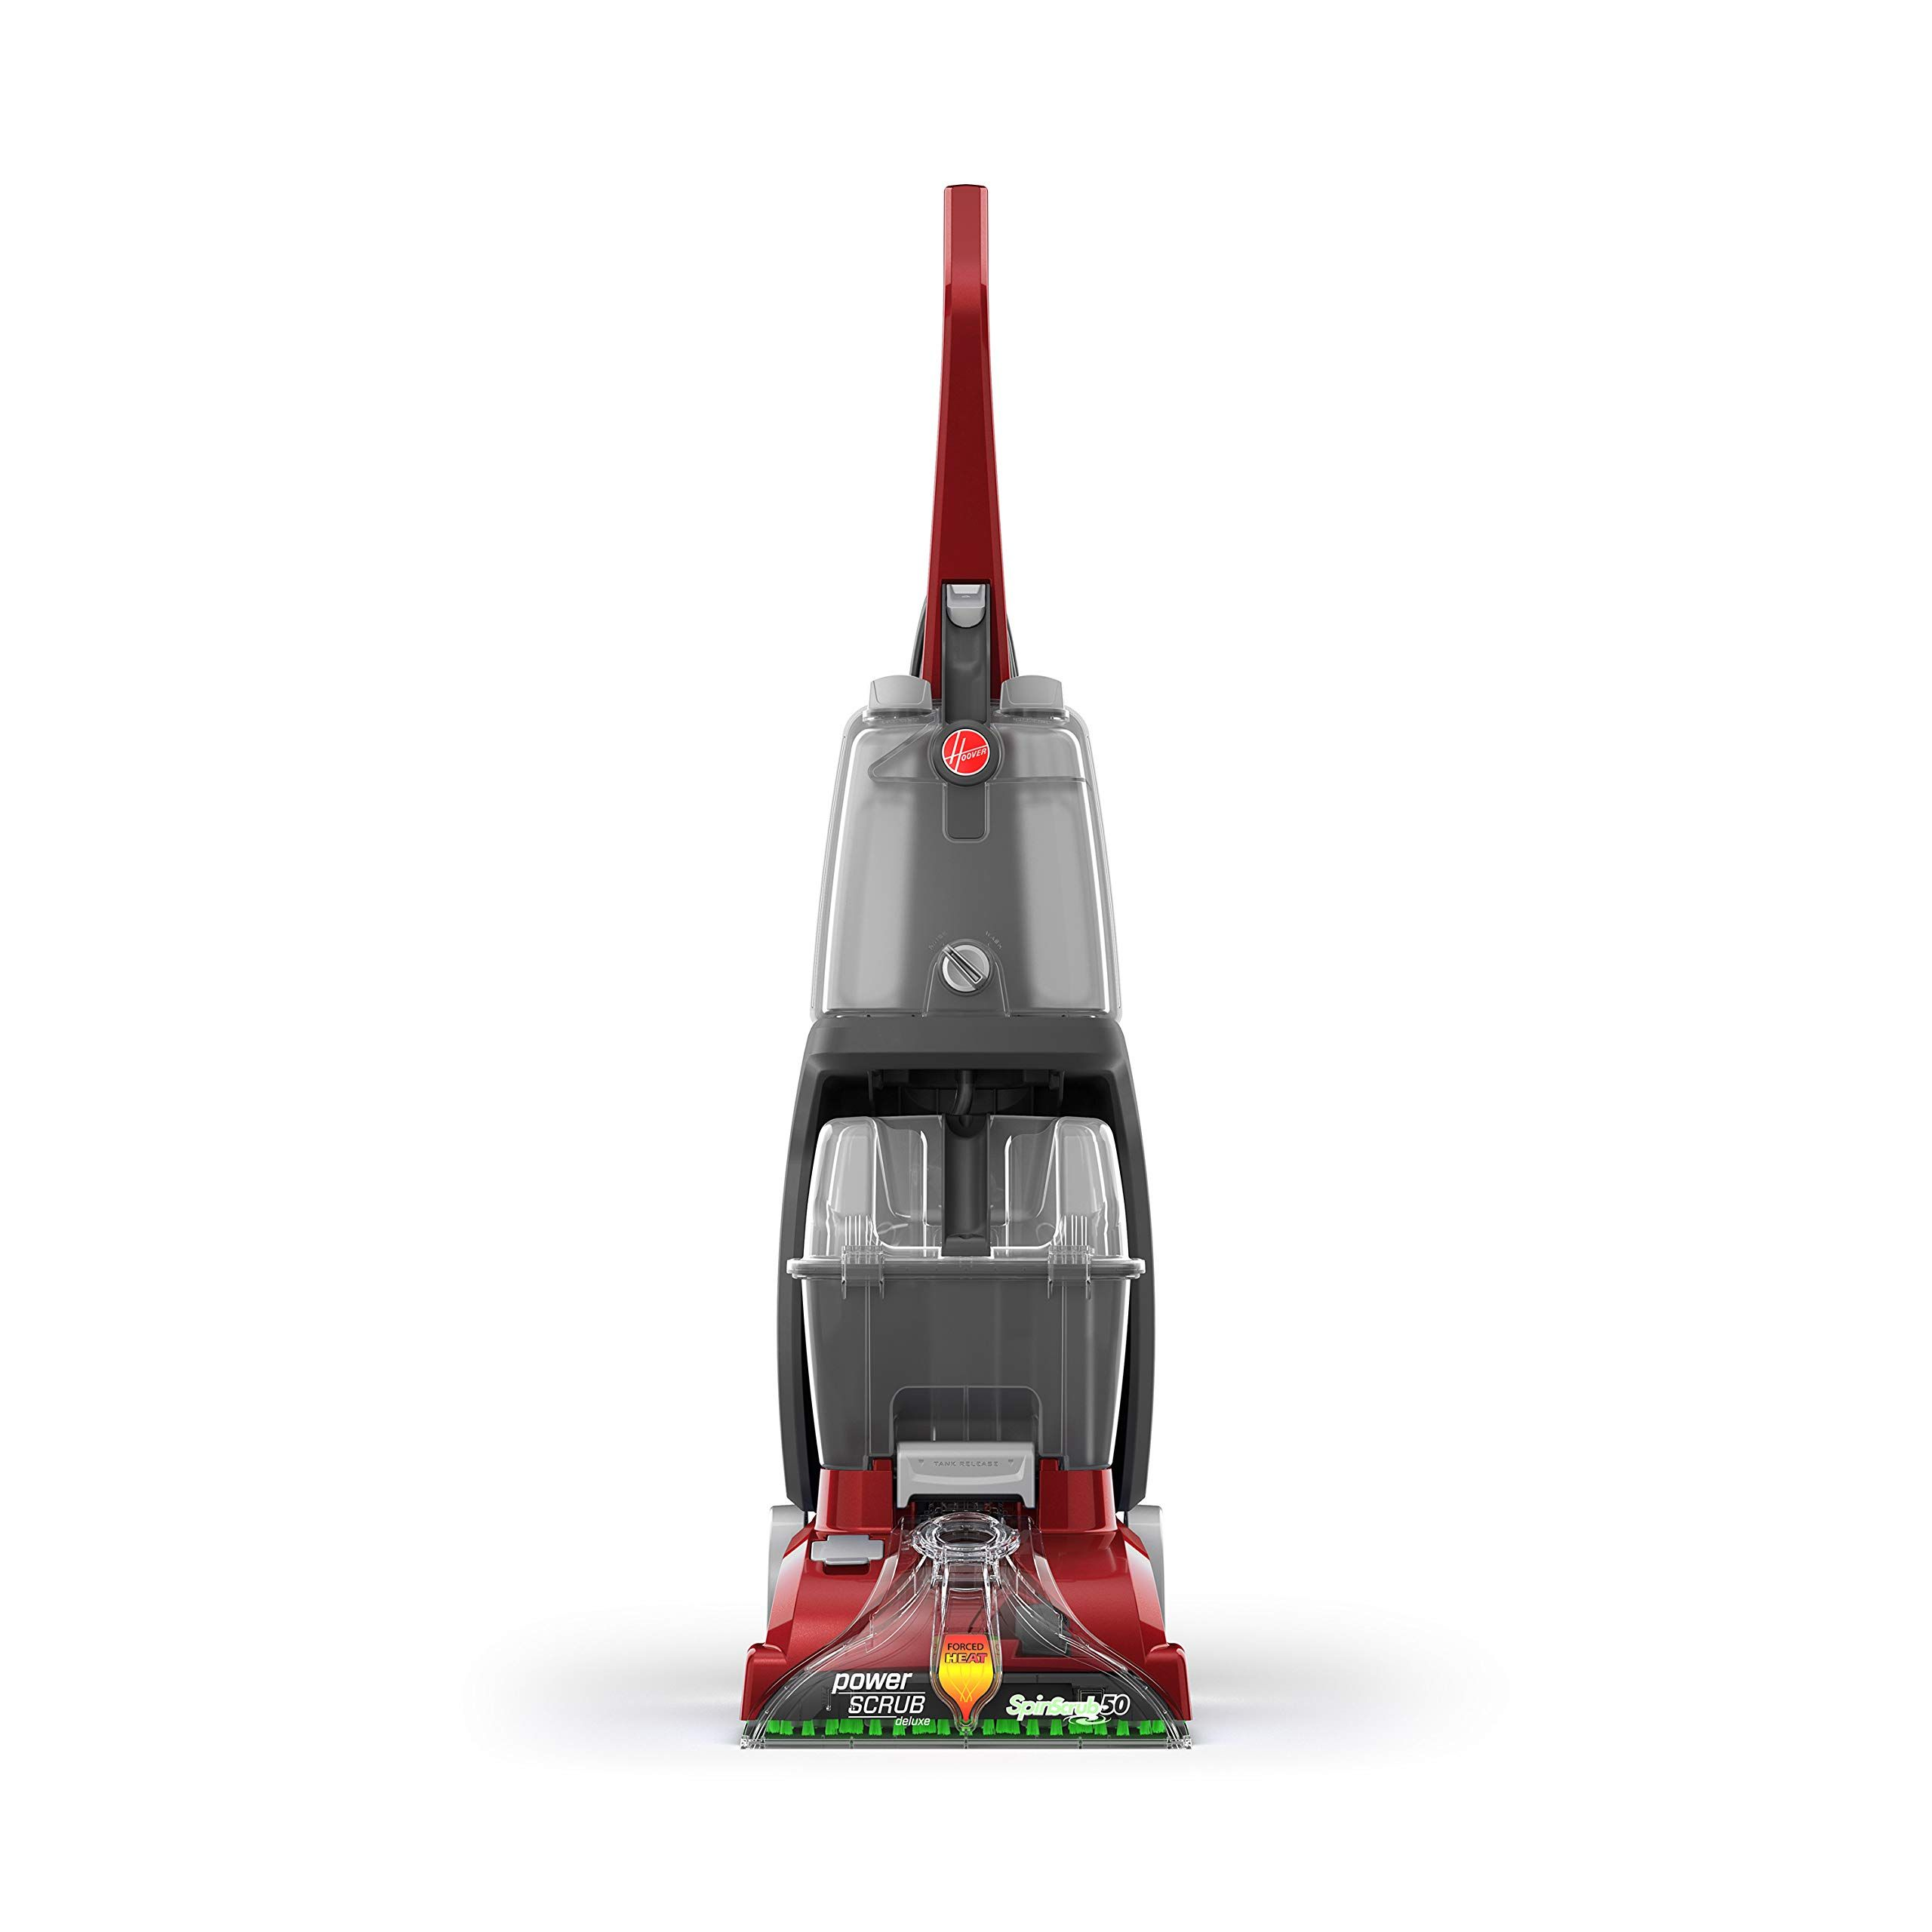 Hoover power scrub deluxe carpet cleaner machine upright